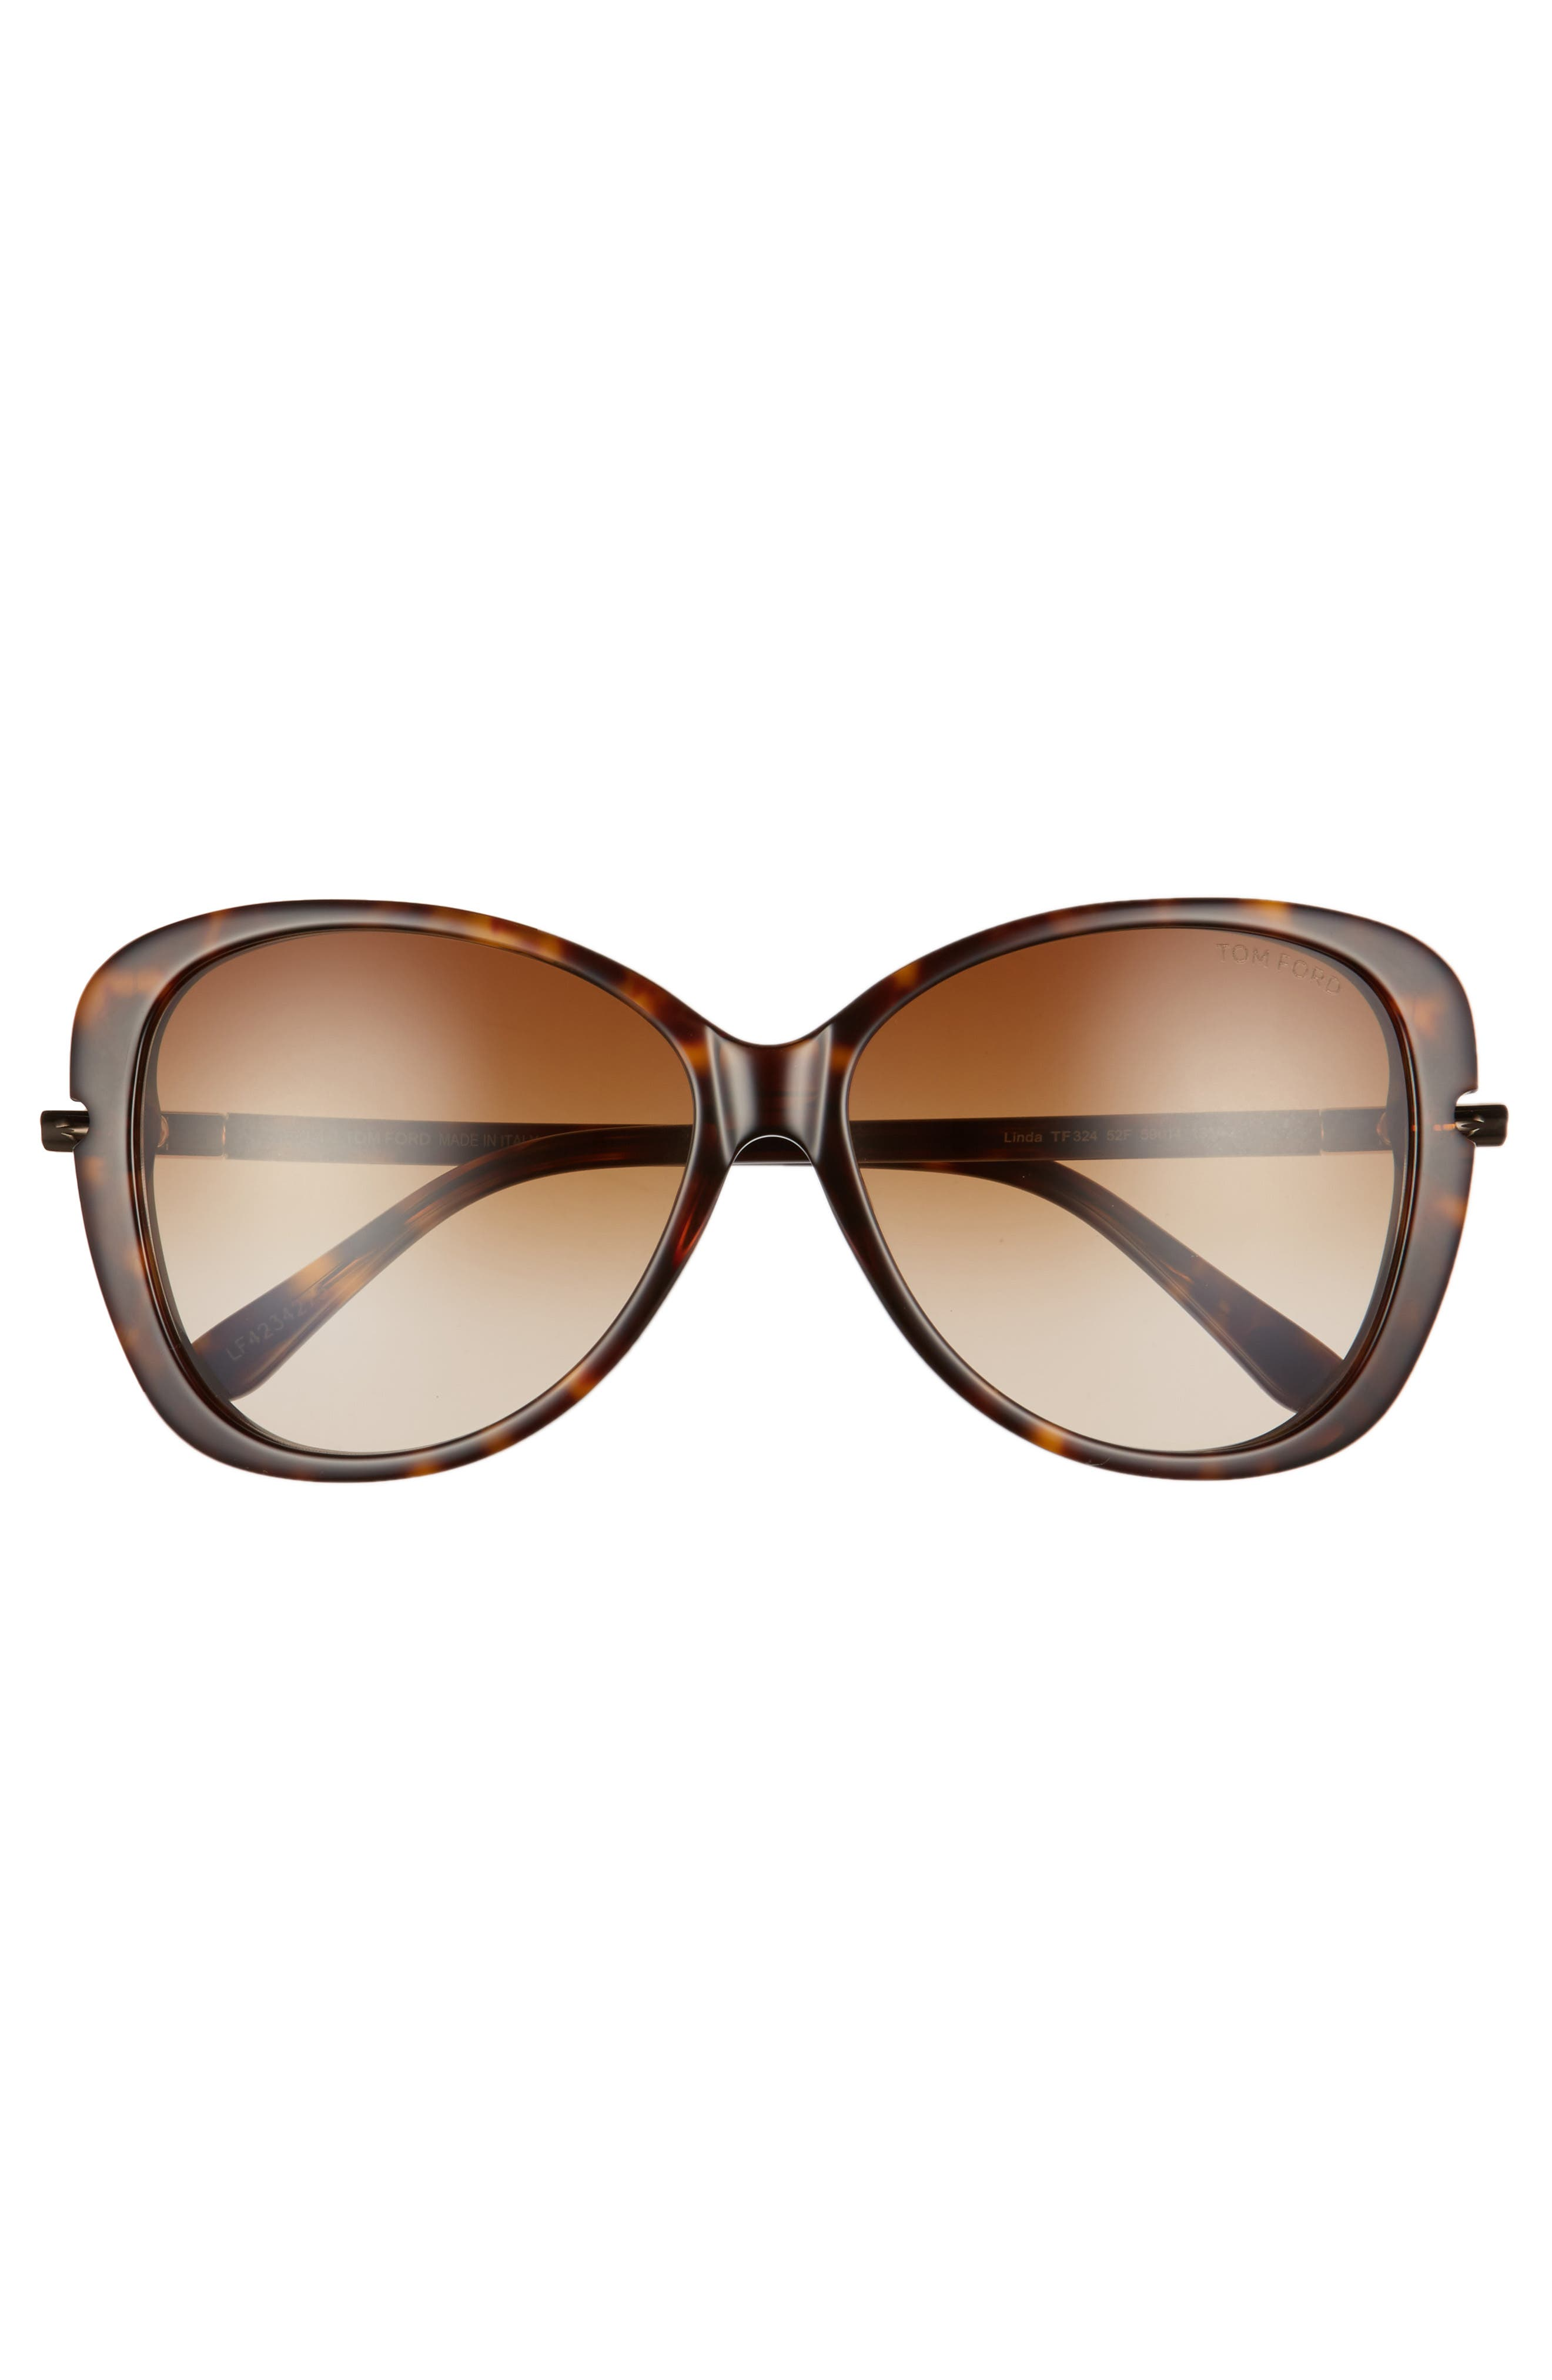 TOM FORD,                             Linda 59mm Gradient Butterfly Sunglasses,                             Alternate thumbnail 3, color,                             200